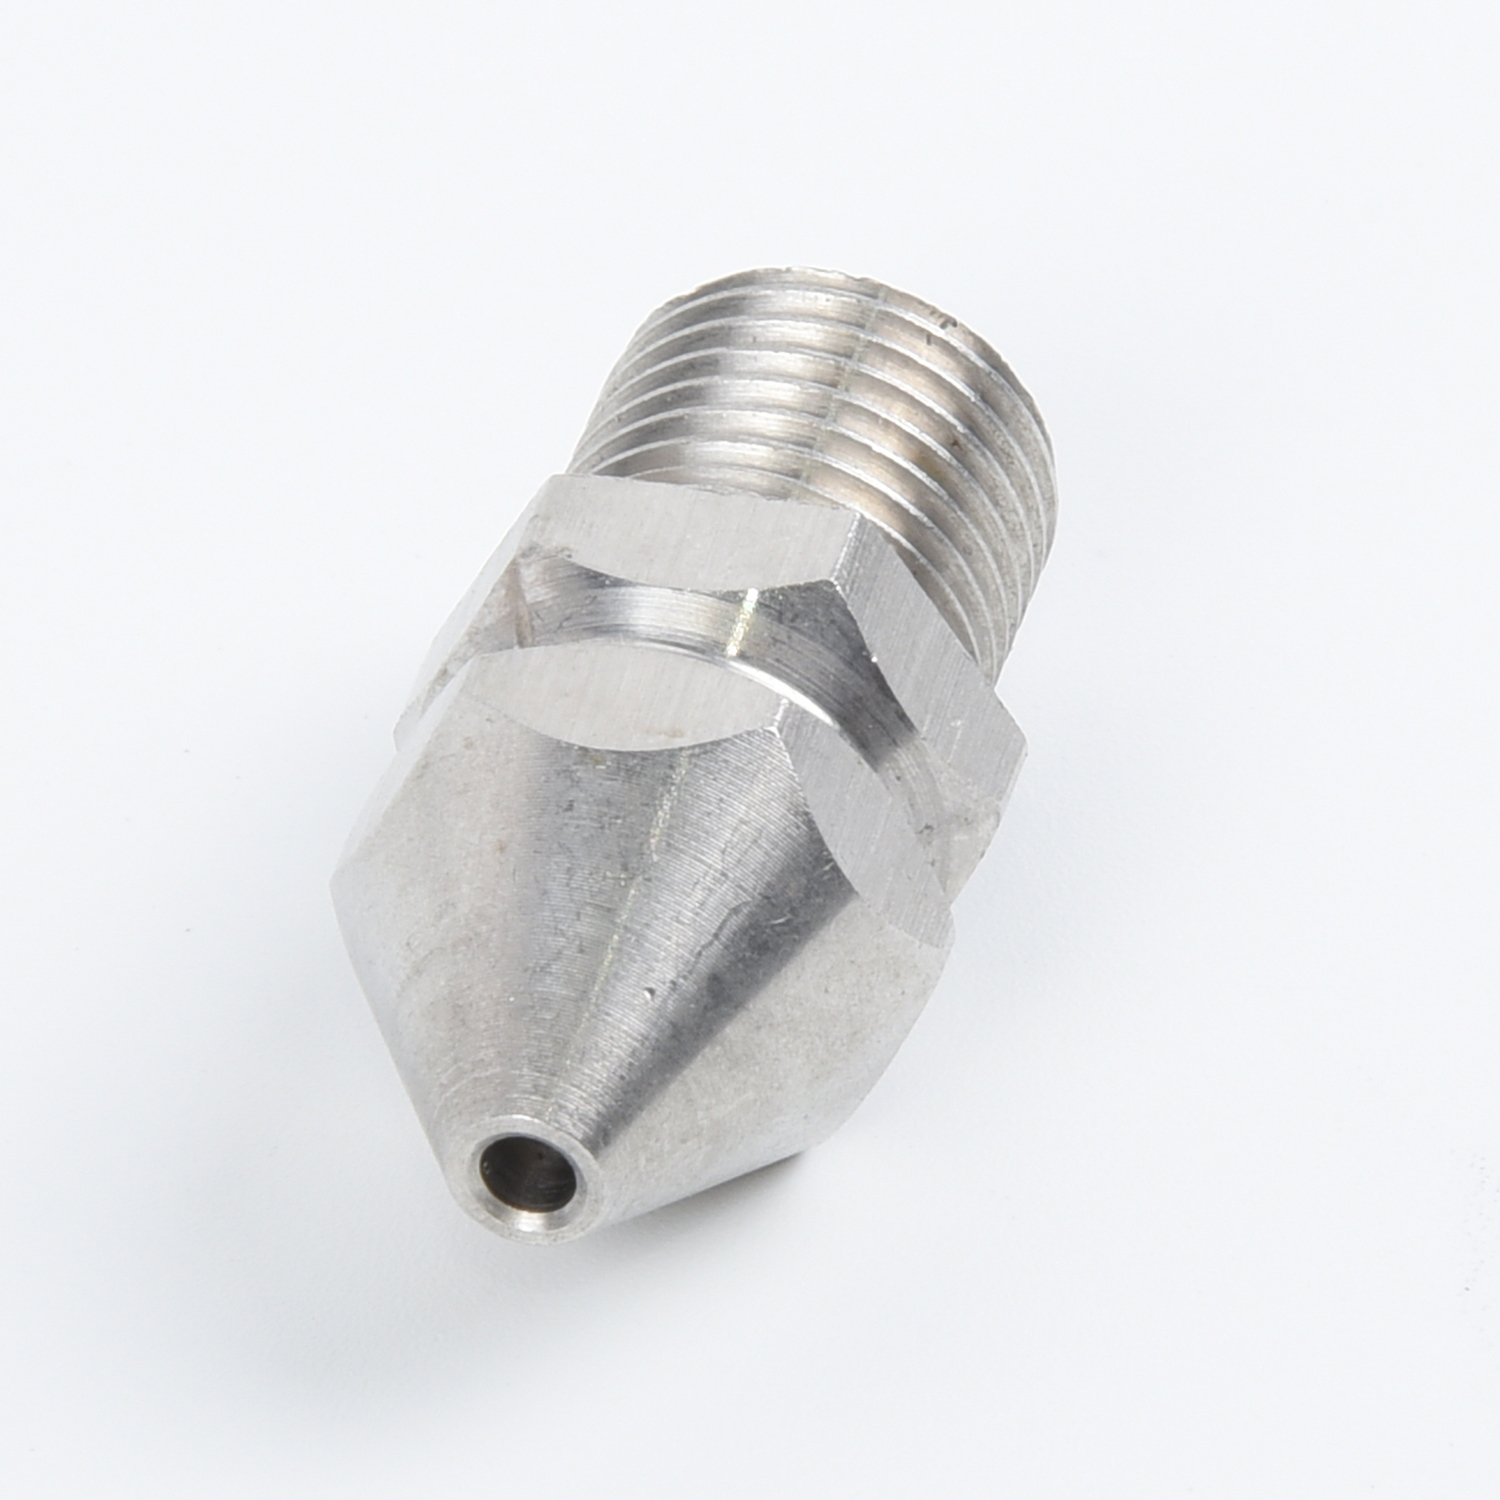 """1//4/"""" Pressure Washer Drain Sewer Cleaning Pipe Jetter Rotary Nozzle 4Jet"""